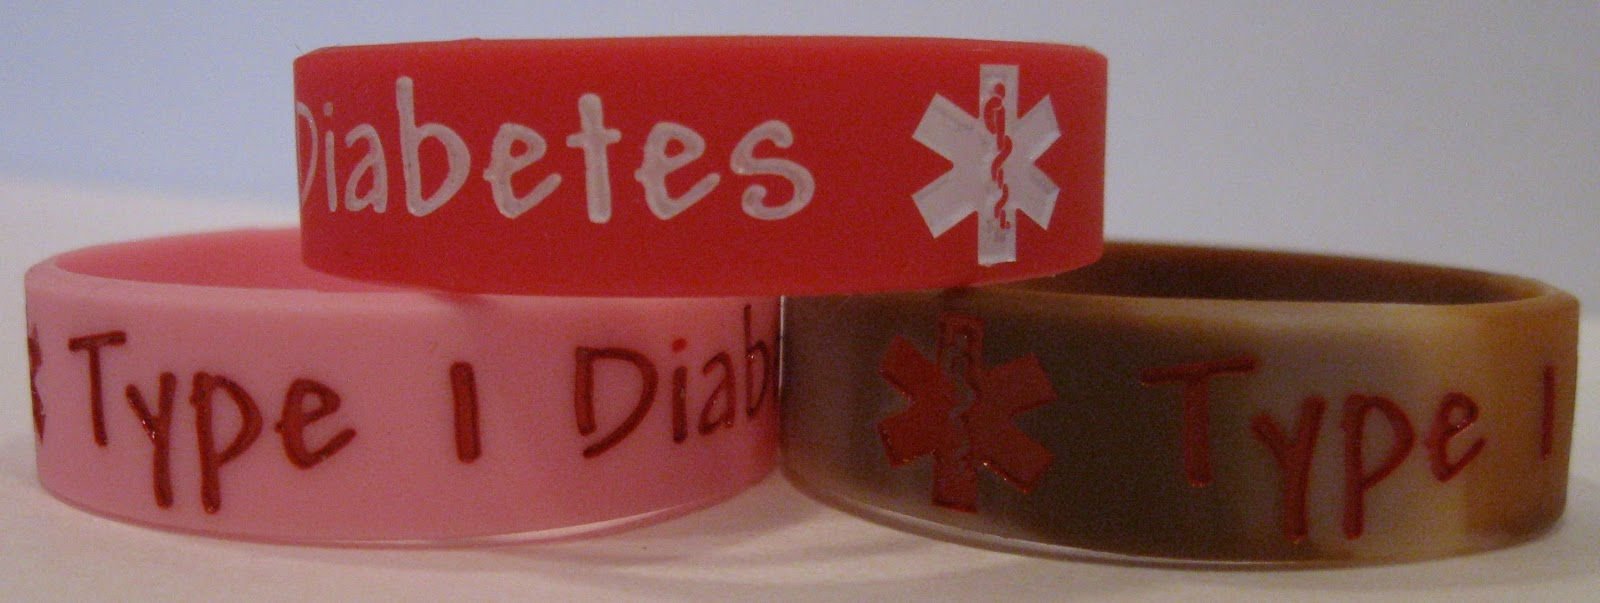 diabetes youtube medical alert watch type bracelet